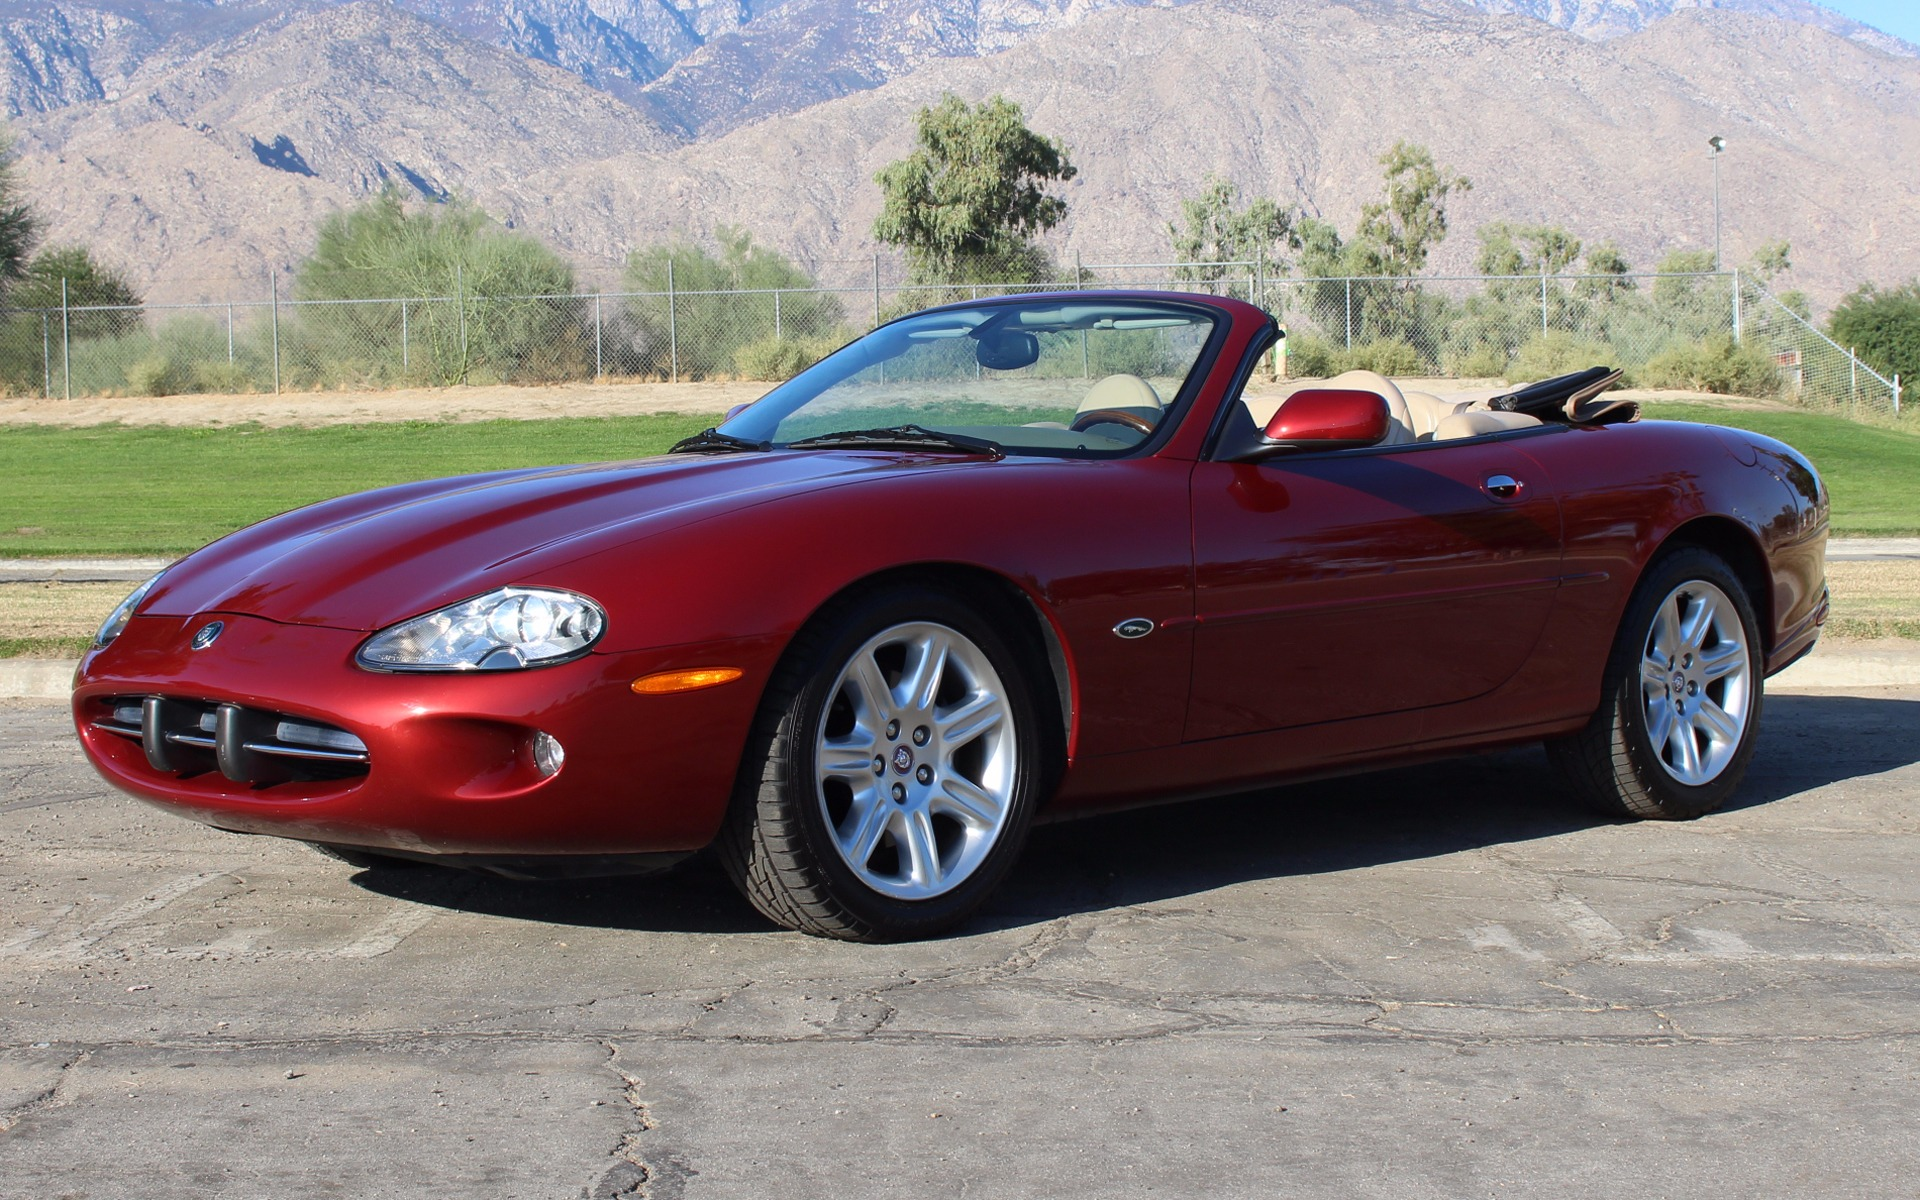 tan metallic caramel convertible forums for radiance red jaguar sale pictures photo request forum xk of xkr